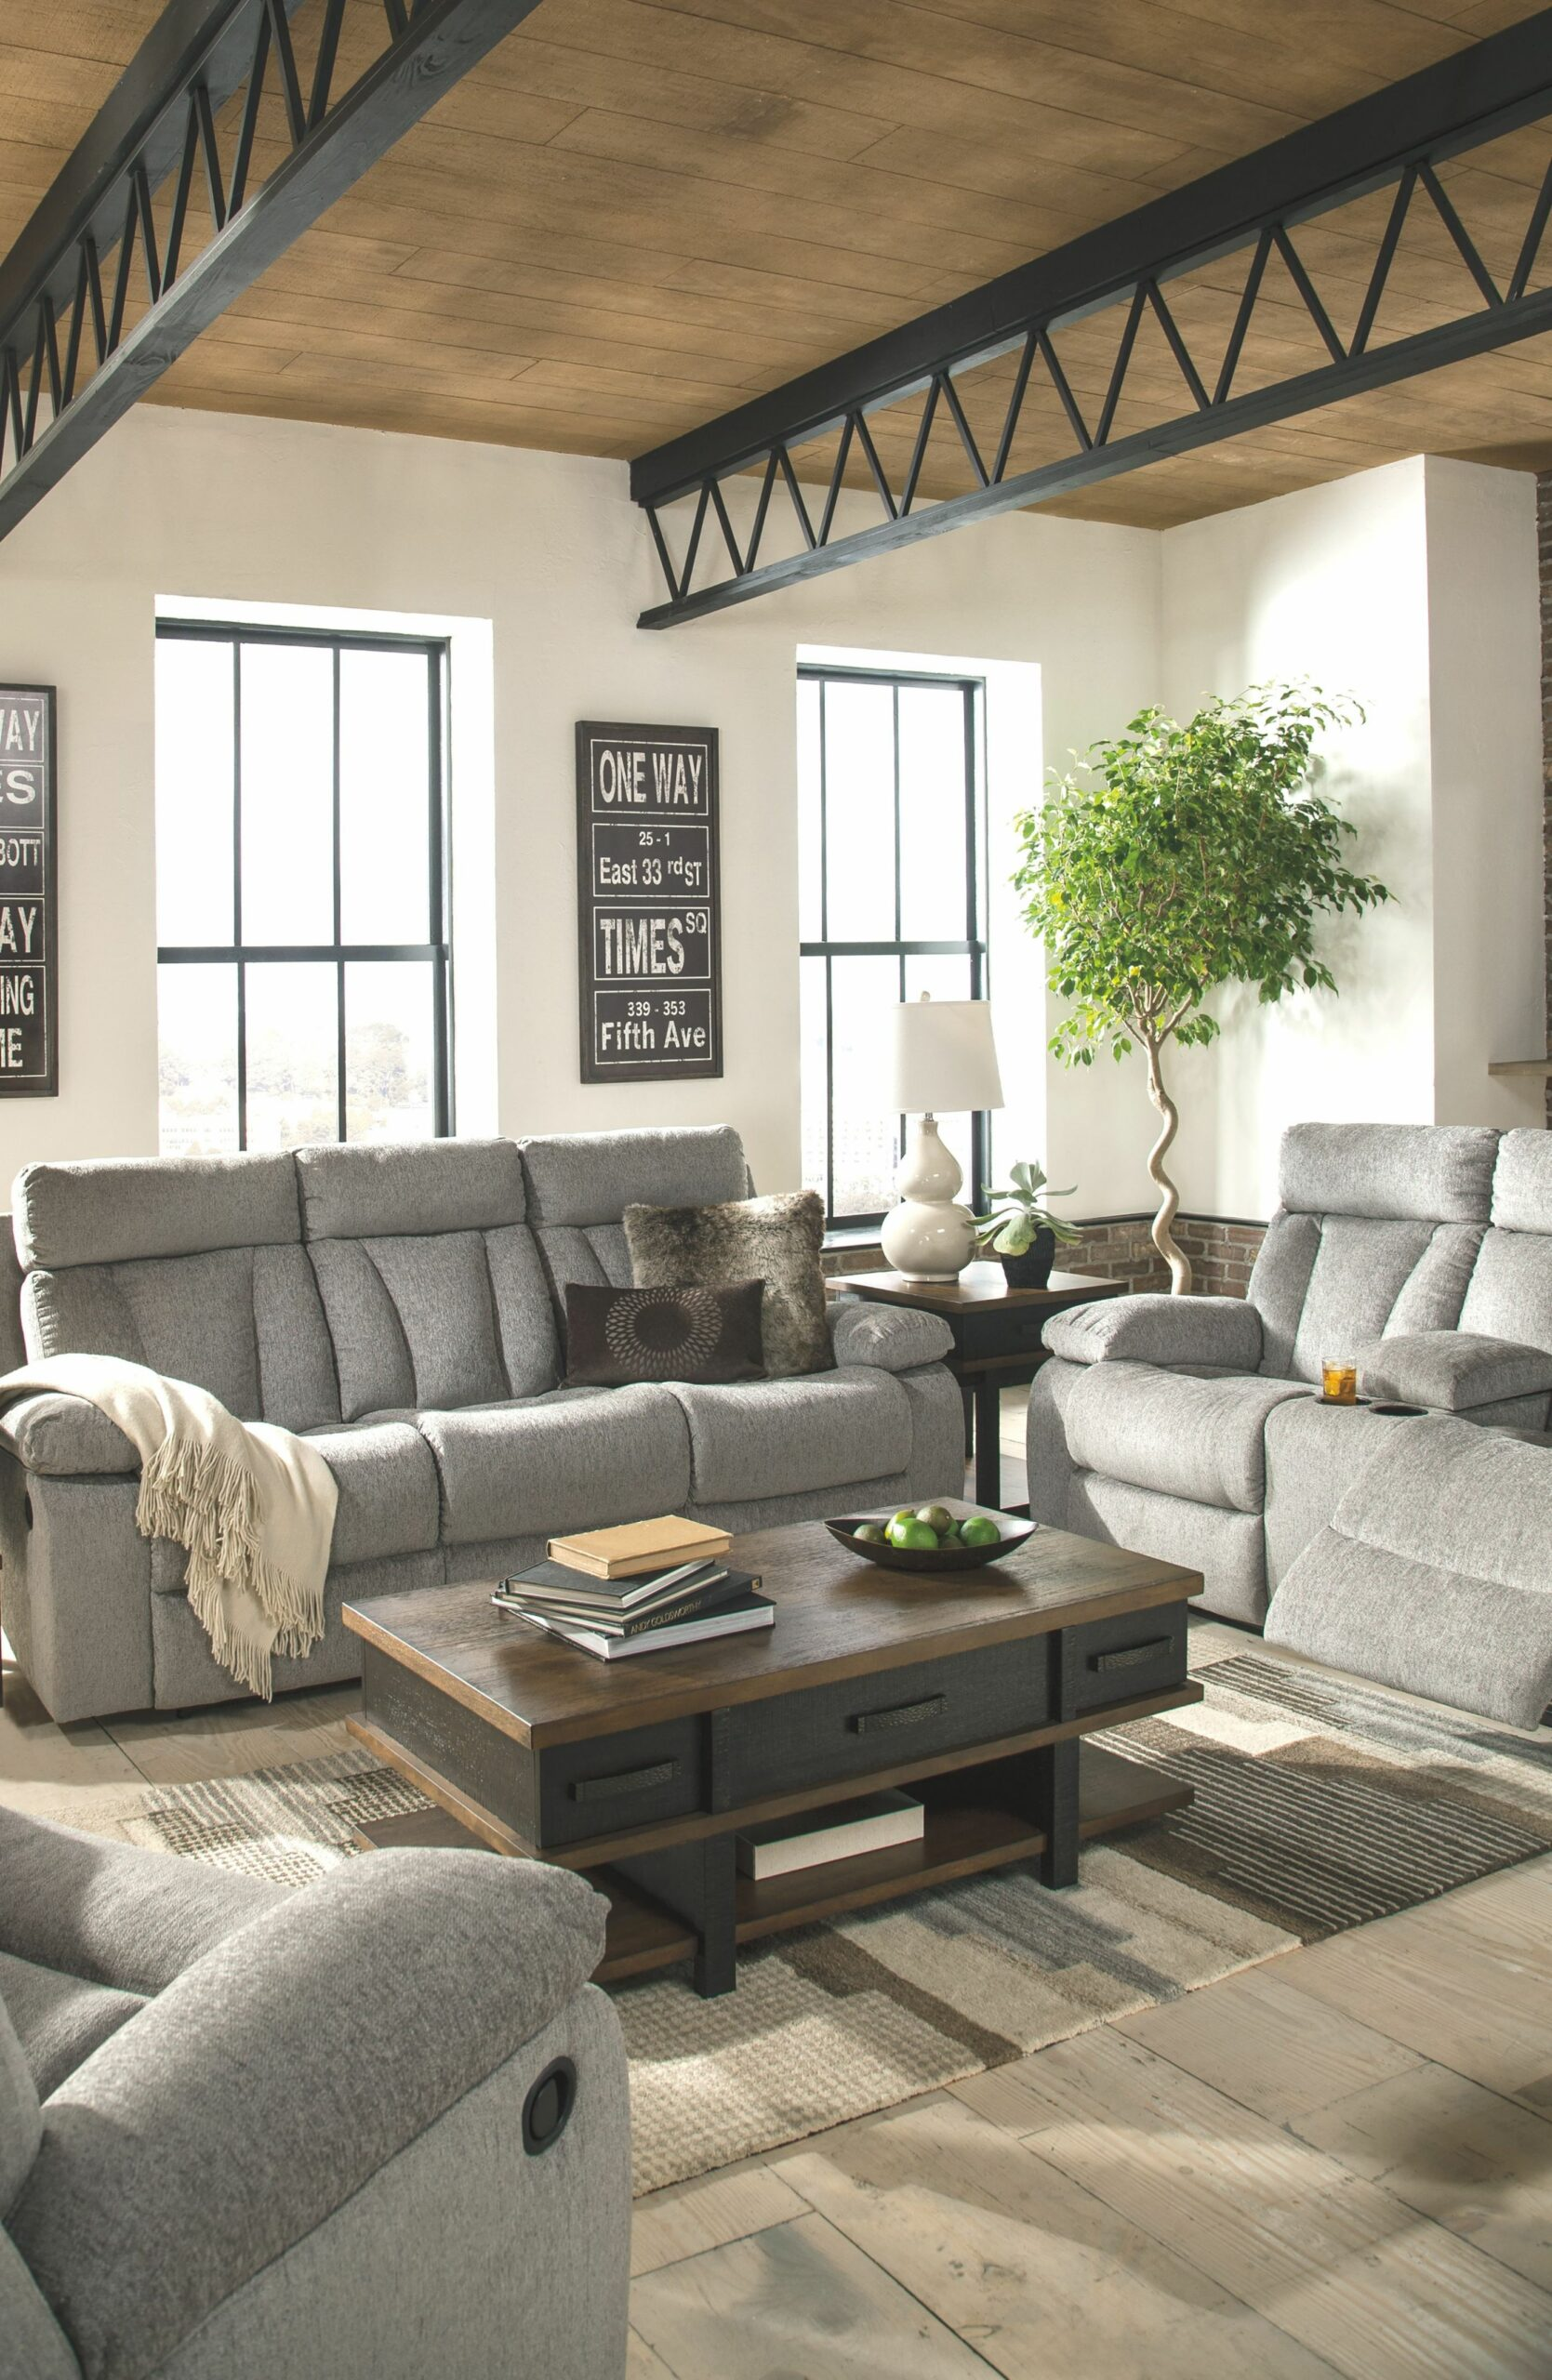 Mitchiner Recliner | Farm house living room, Livingroom layout ..